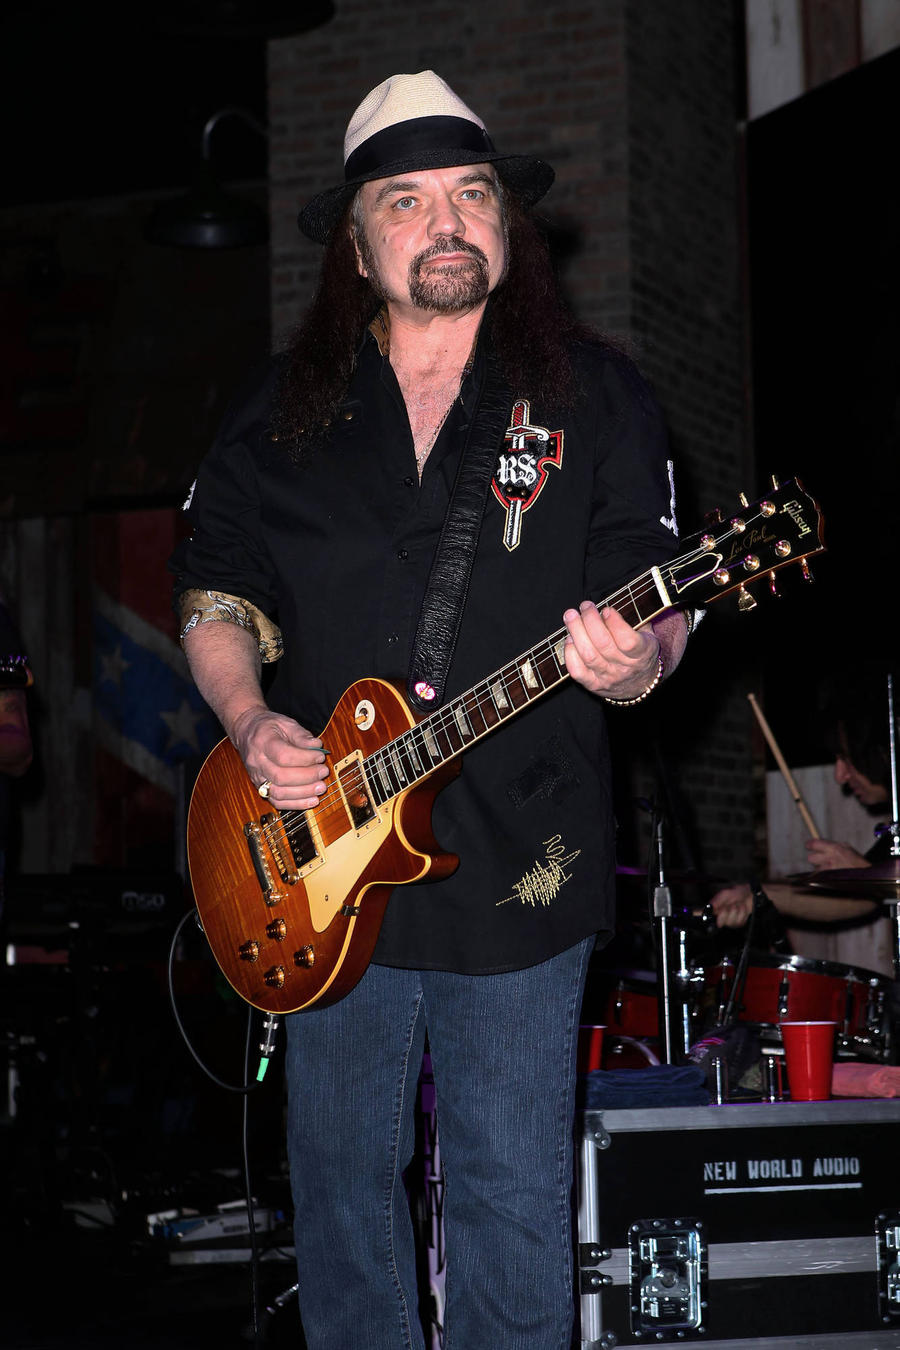 Gary Rossington 'Feeling Real Good' After Heart Surgery